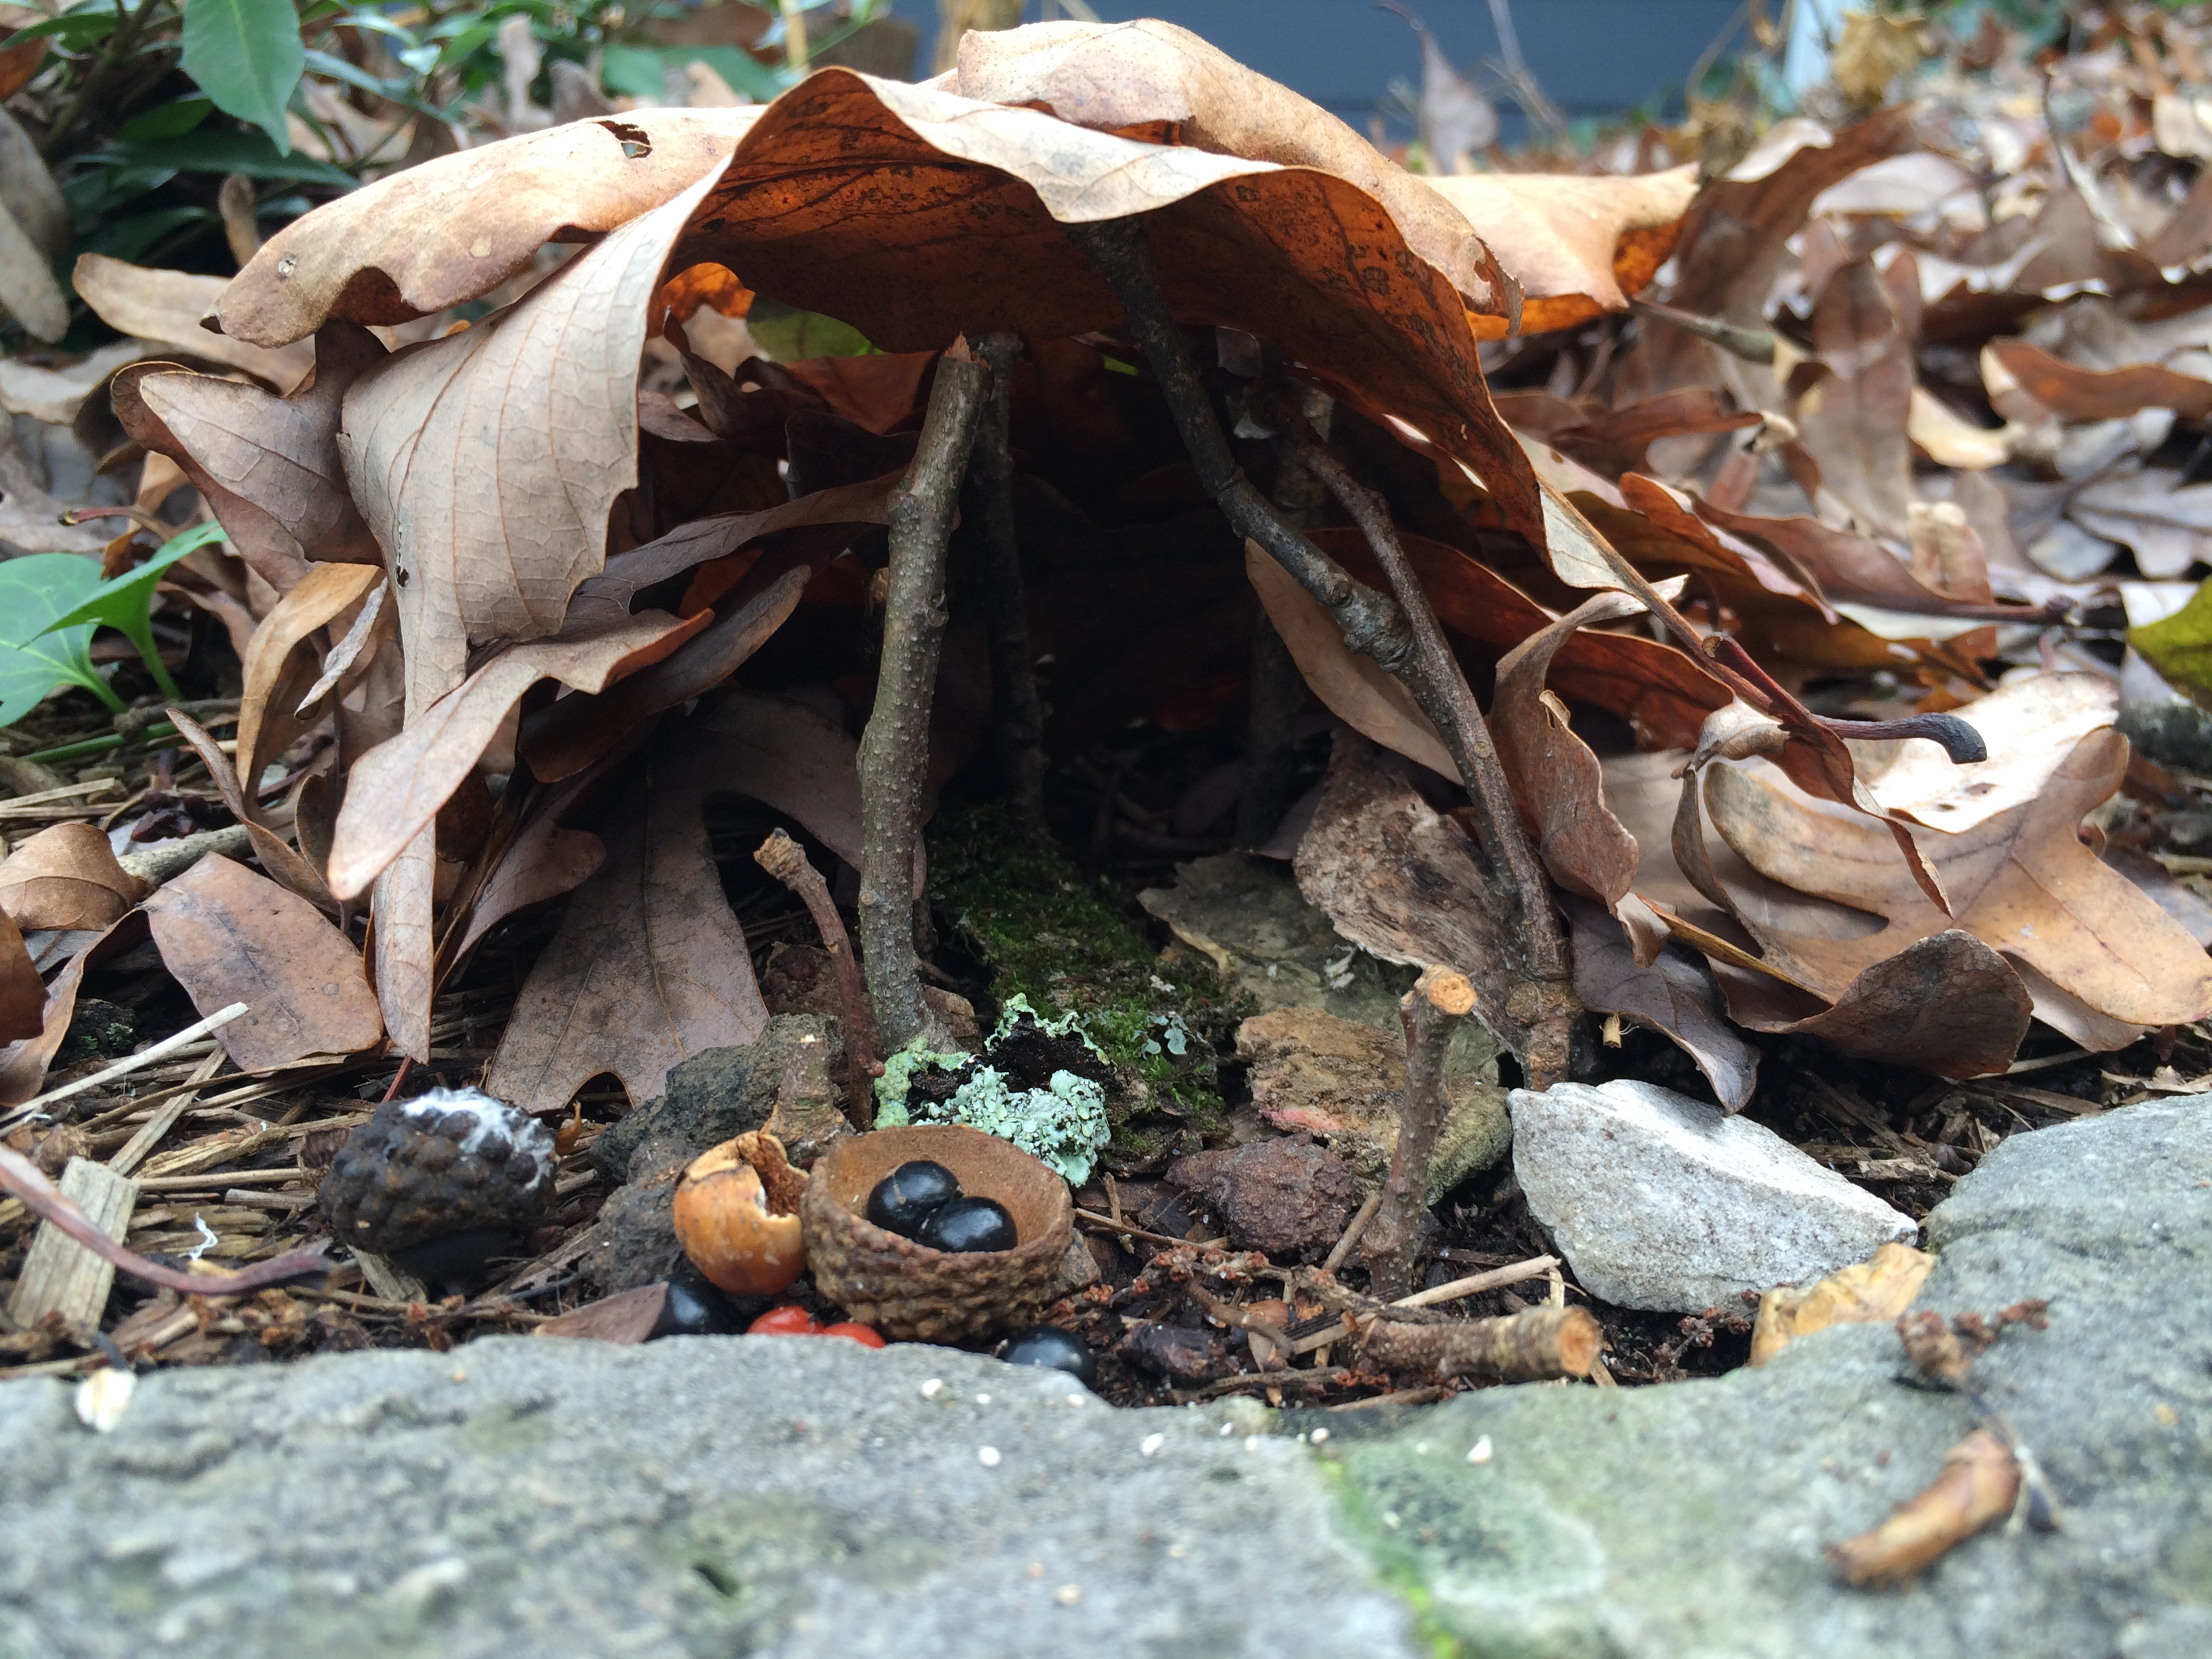 Building Fairy Houses Using Natural Materials Found Outside Is An  Imaginative Way For Children To Engage In The World Outside Their Doorstep.